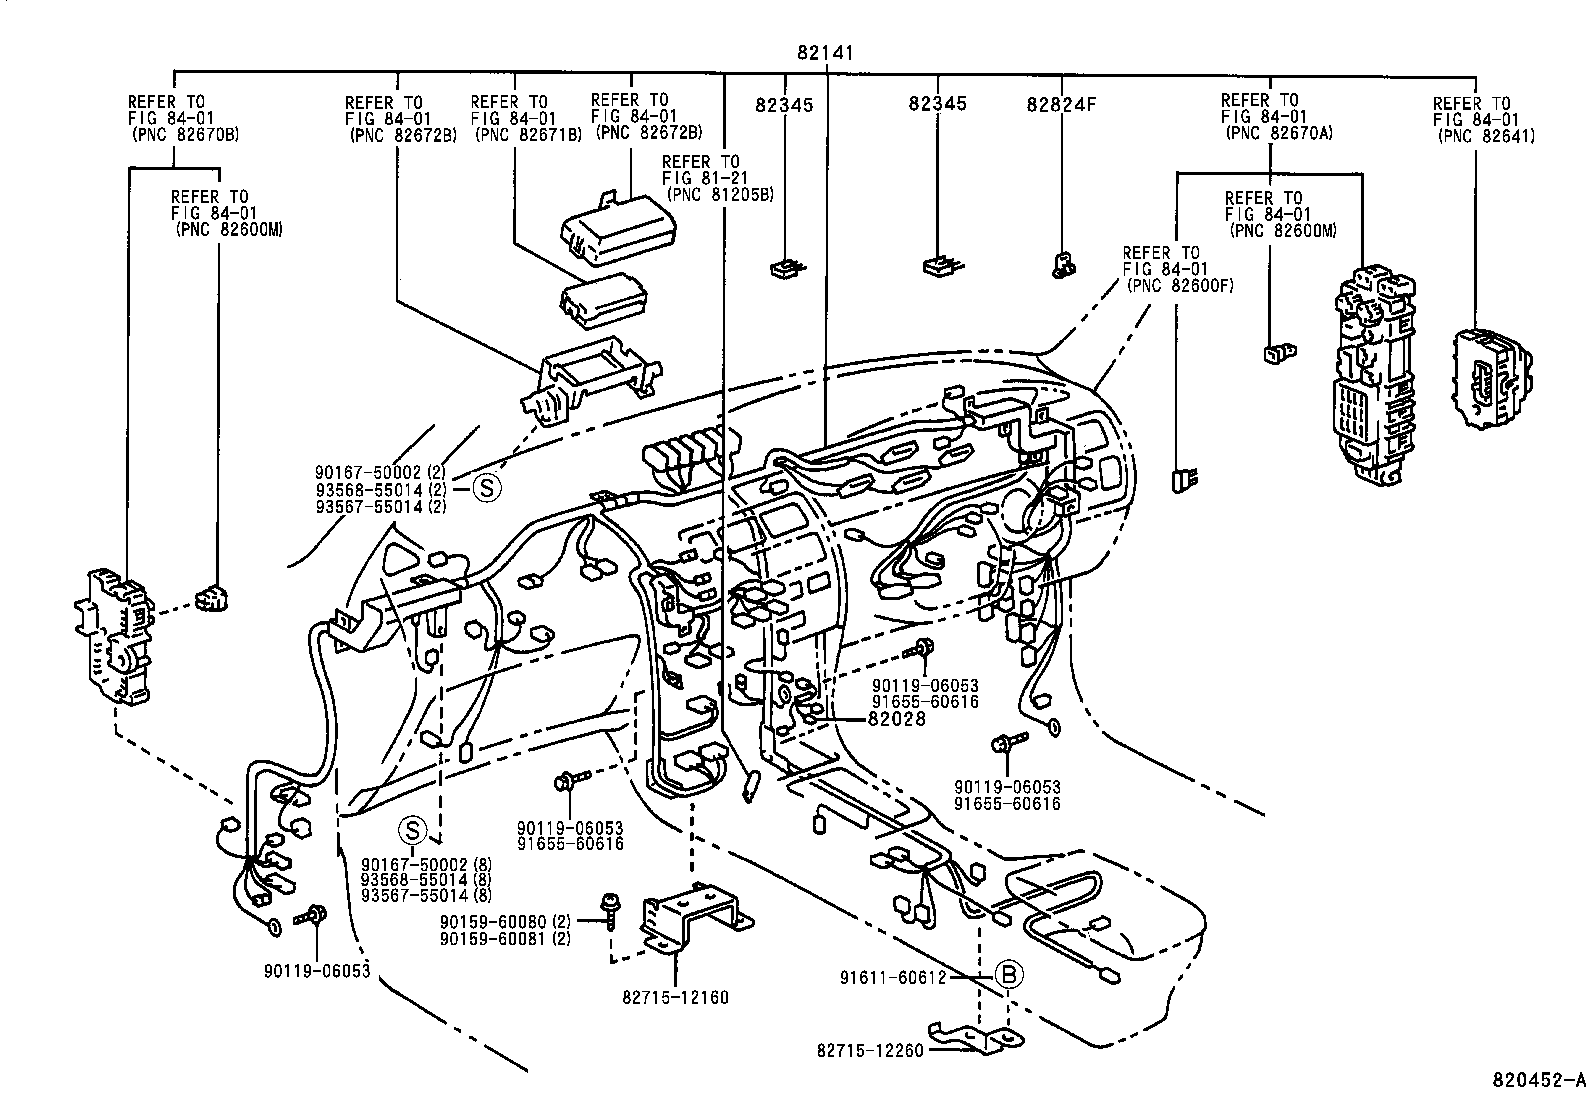 wiring diagram ecu toyota hilux images 2000 toyota corolla wiring wiring diagram ecu toyota hilux images 2000 toyota corolla wiring diagram further hilux toyota yaris engine immobilizer system schematic wiring diagram